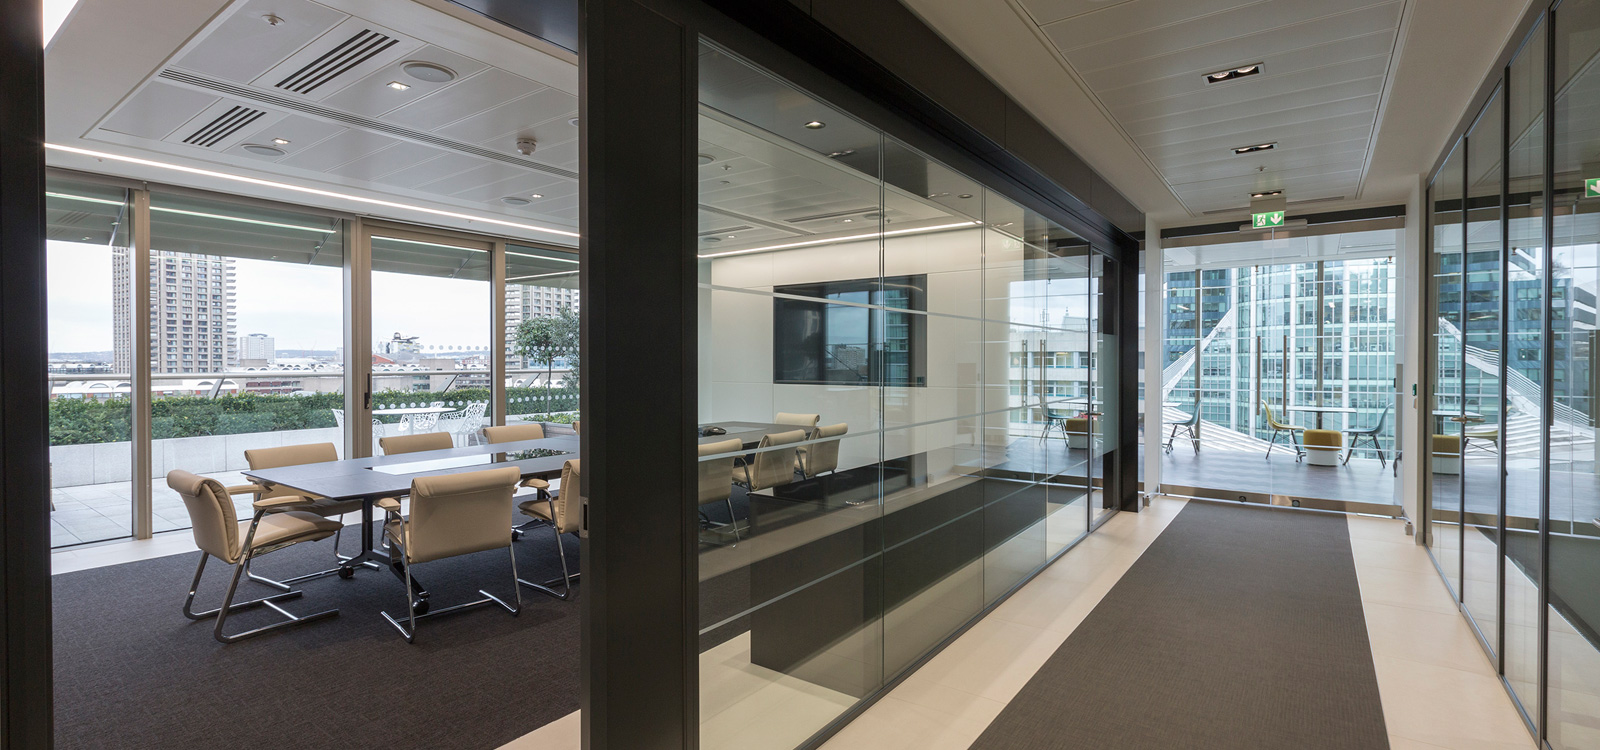 Interiors - Monochromatic office interiors fit out in London